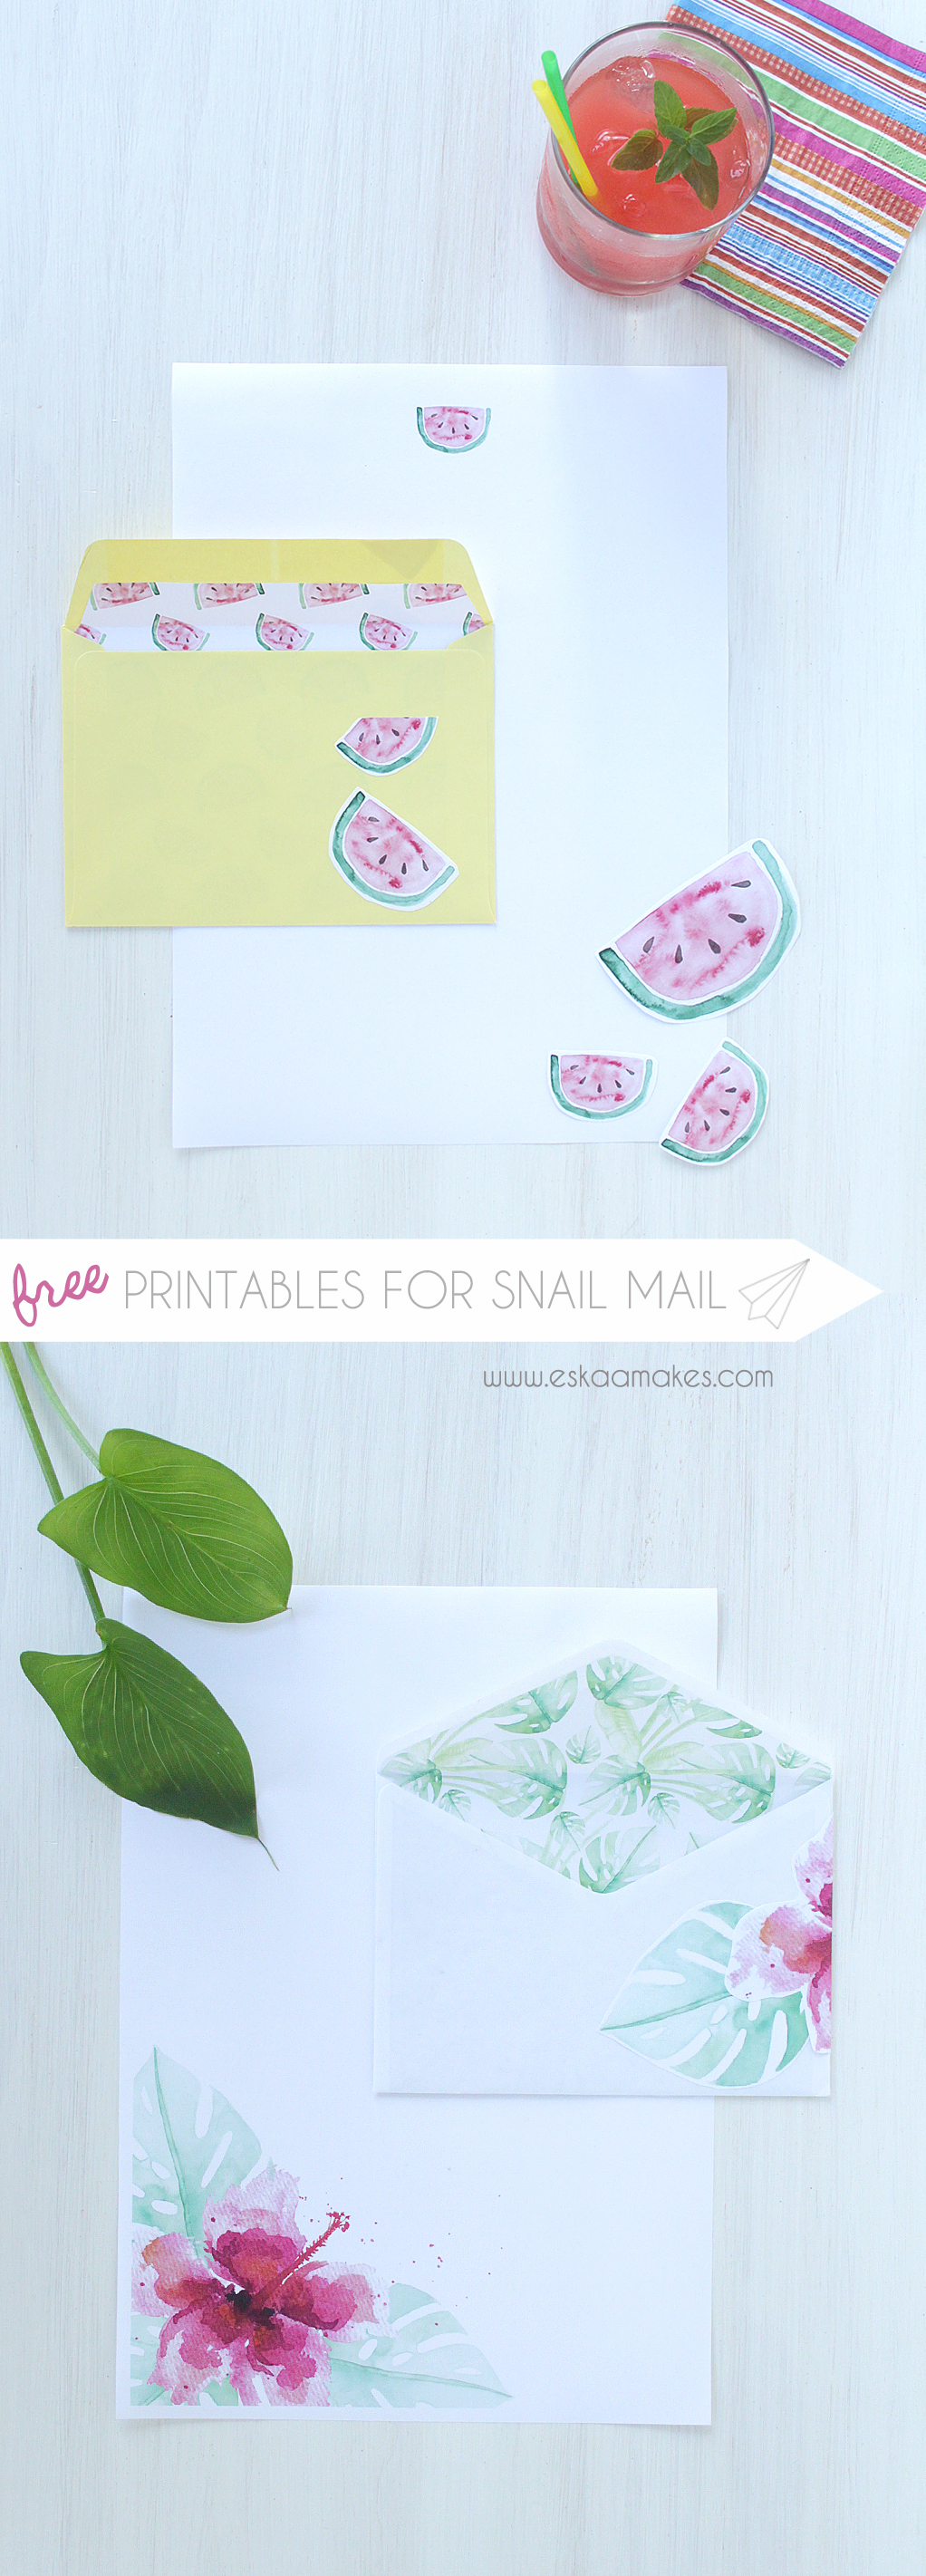 This is a photo of Handy Free Snail Mail